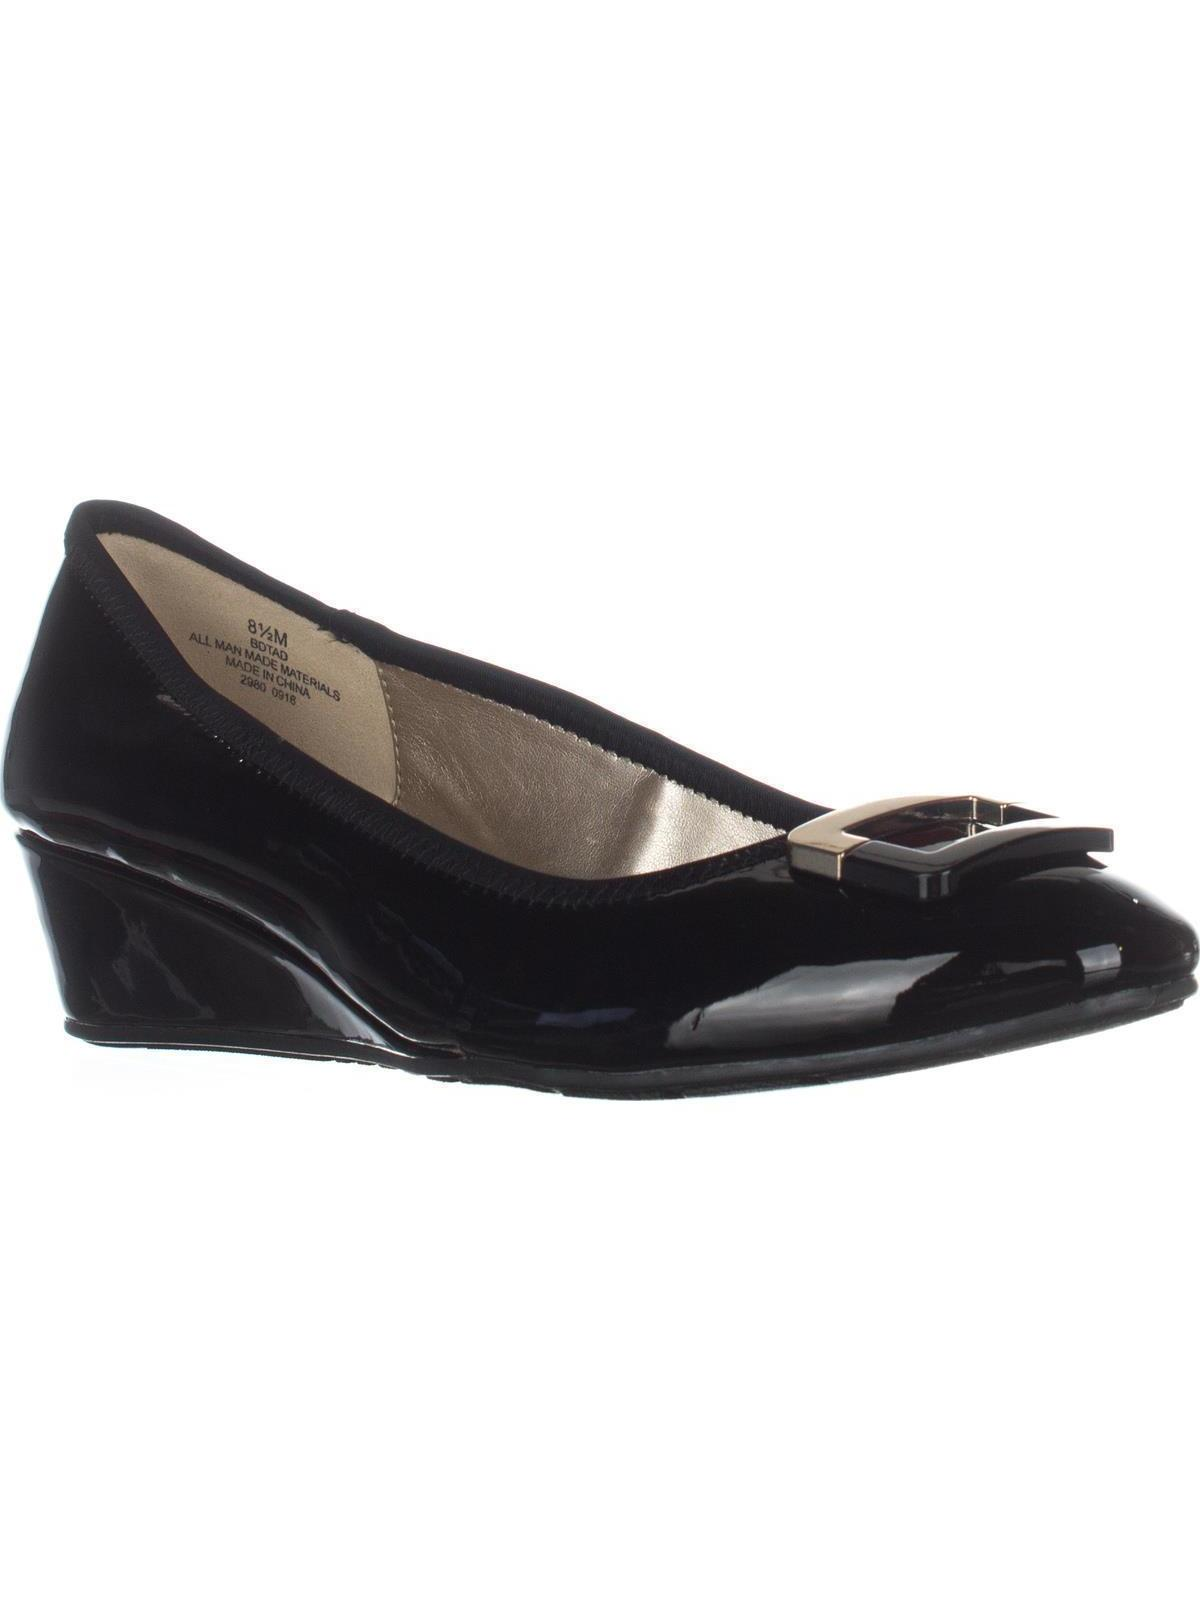 Womens Bandolino Tad Wedge Pumps, Black/Black Leather, 9 US